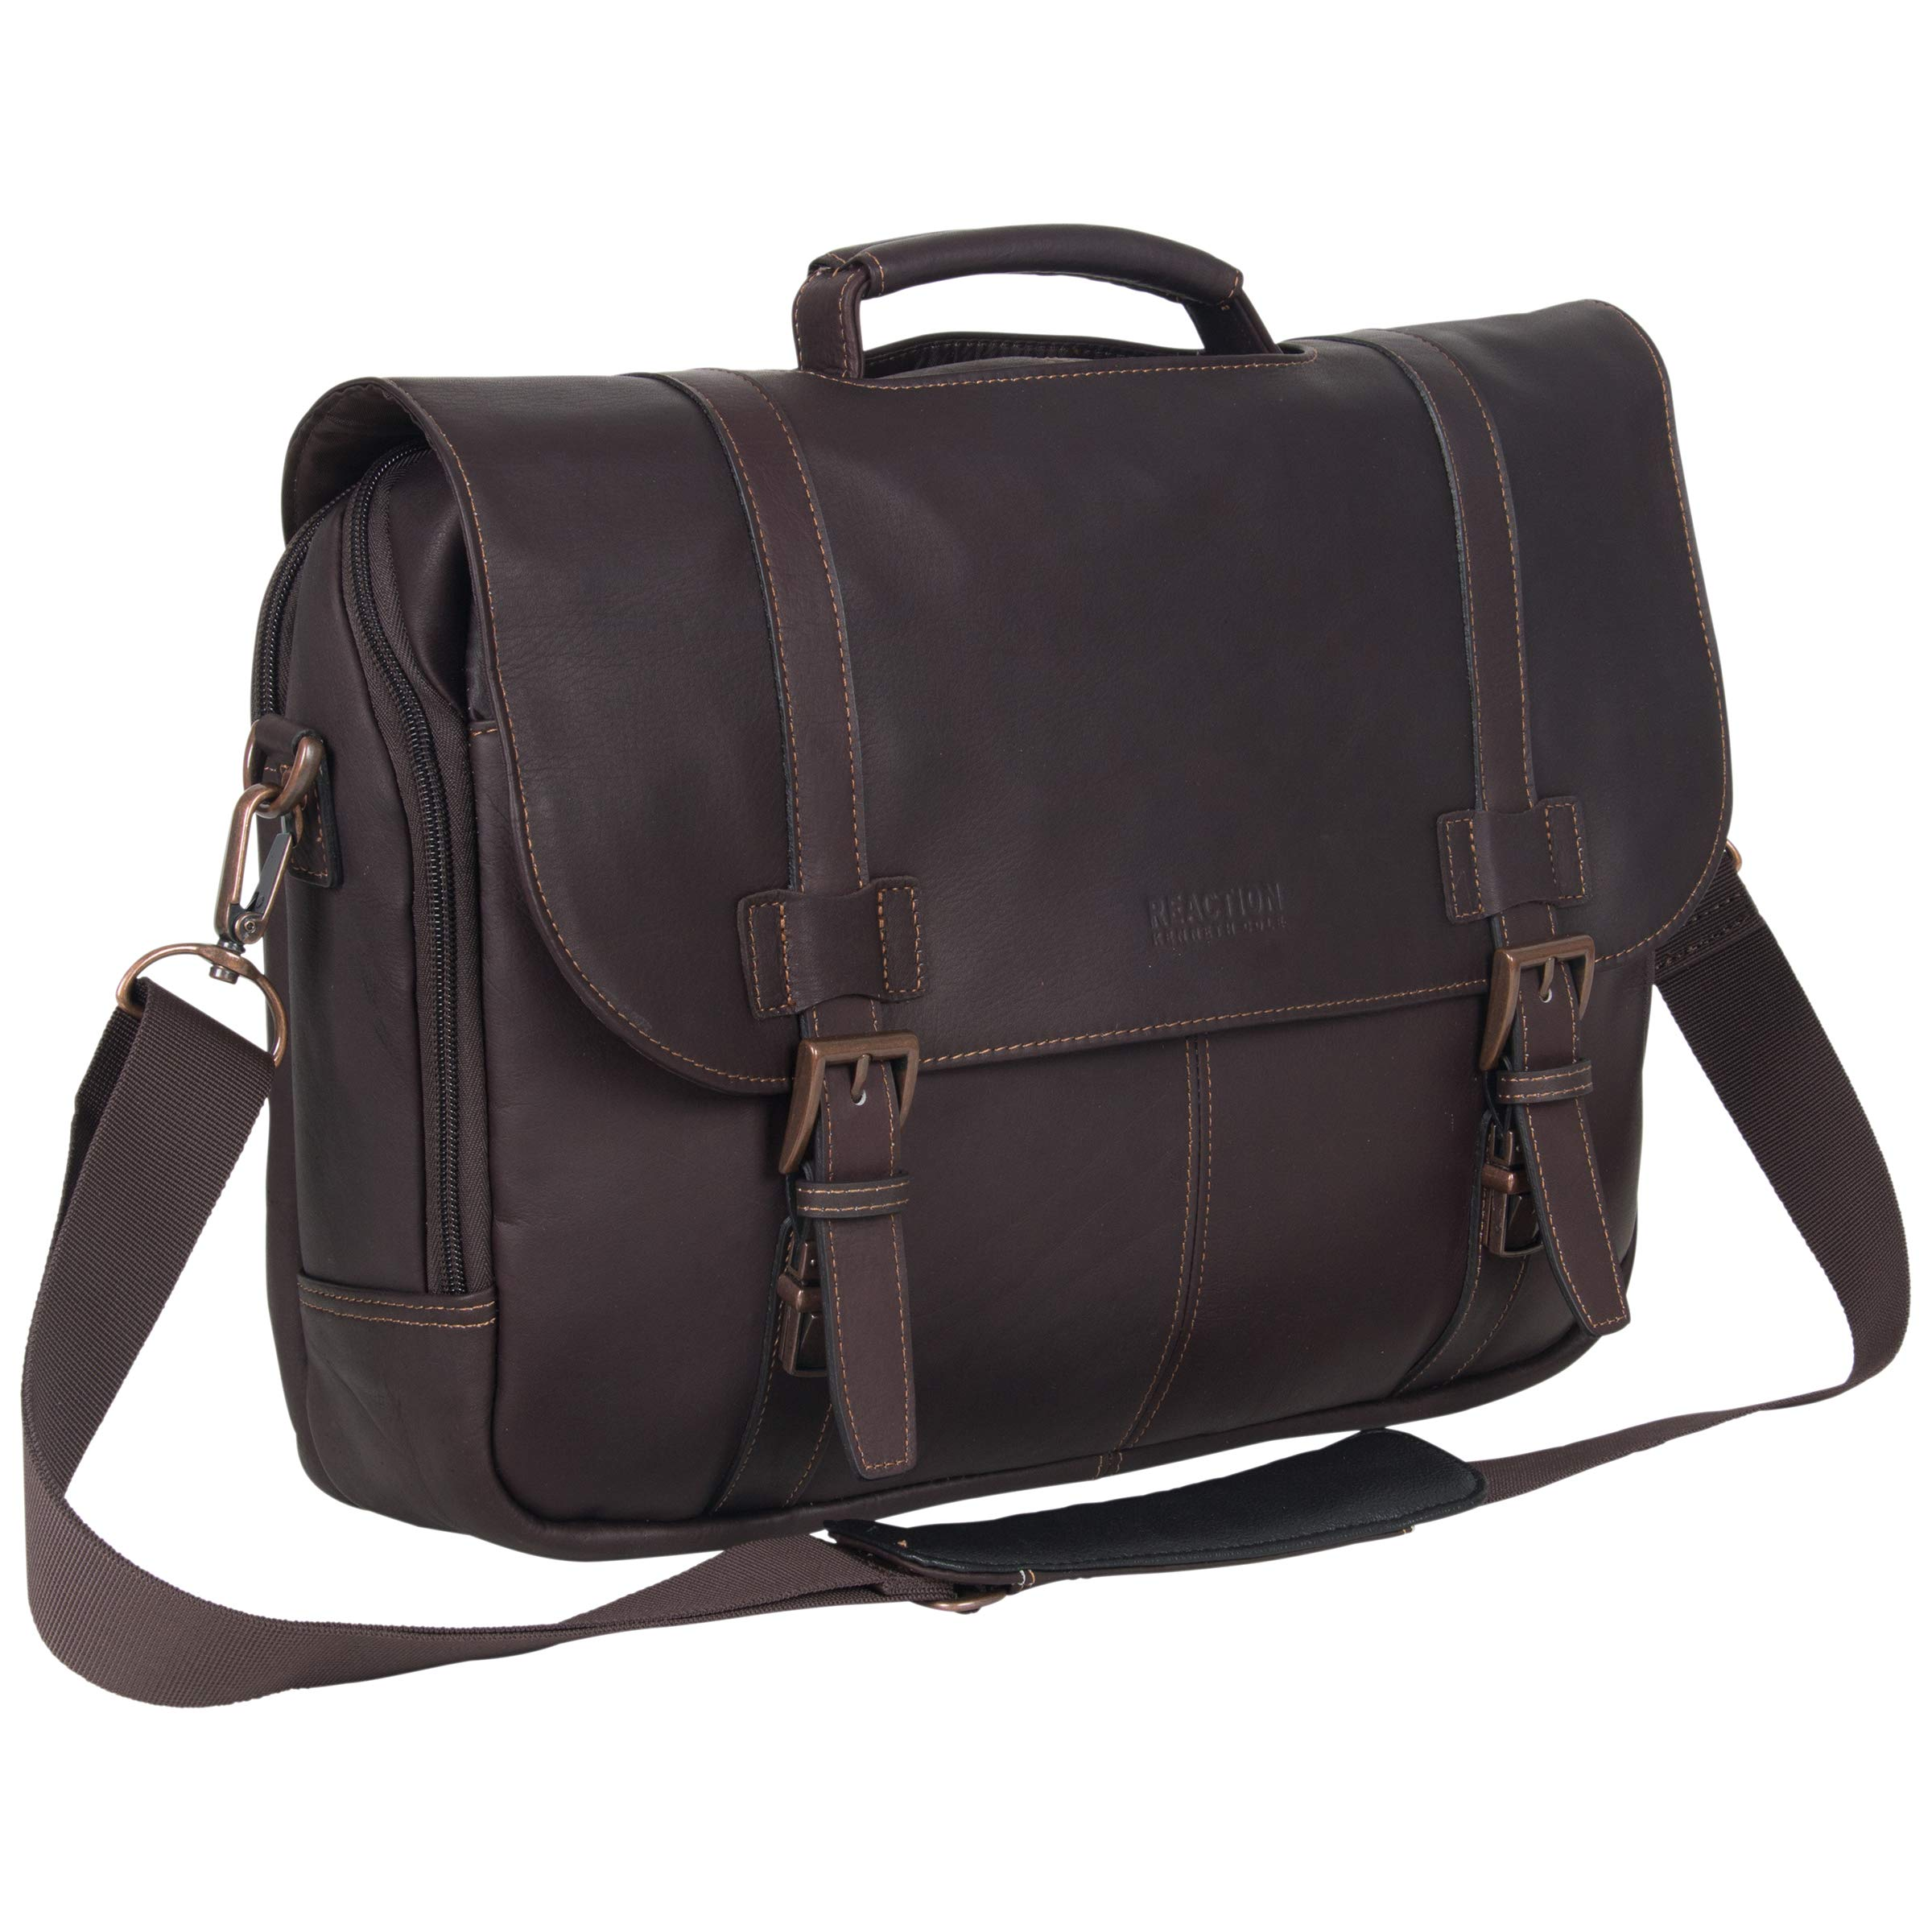 Kenneth Cole Reaction Show Full-Grain Colombian Leather Dual Compartment Flapover 15.6-inch Laptop Business Portfolio, Dark Brown, One Size